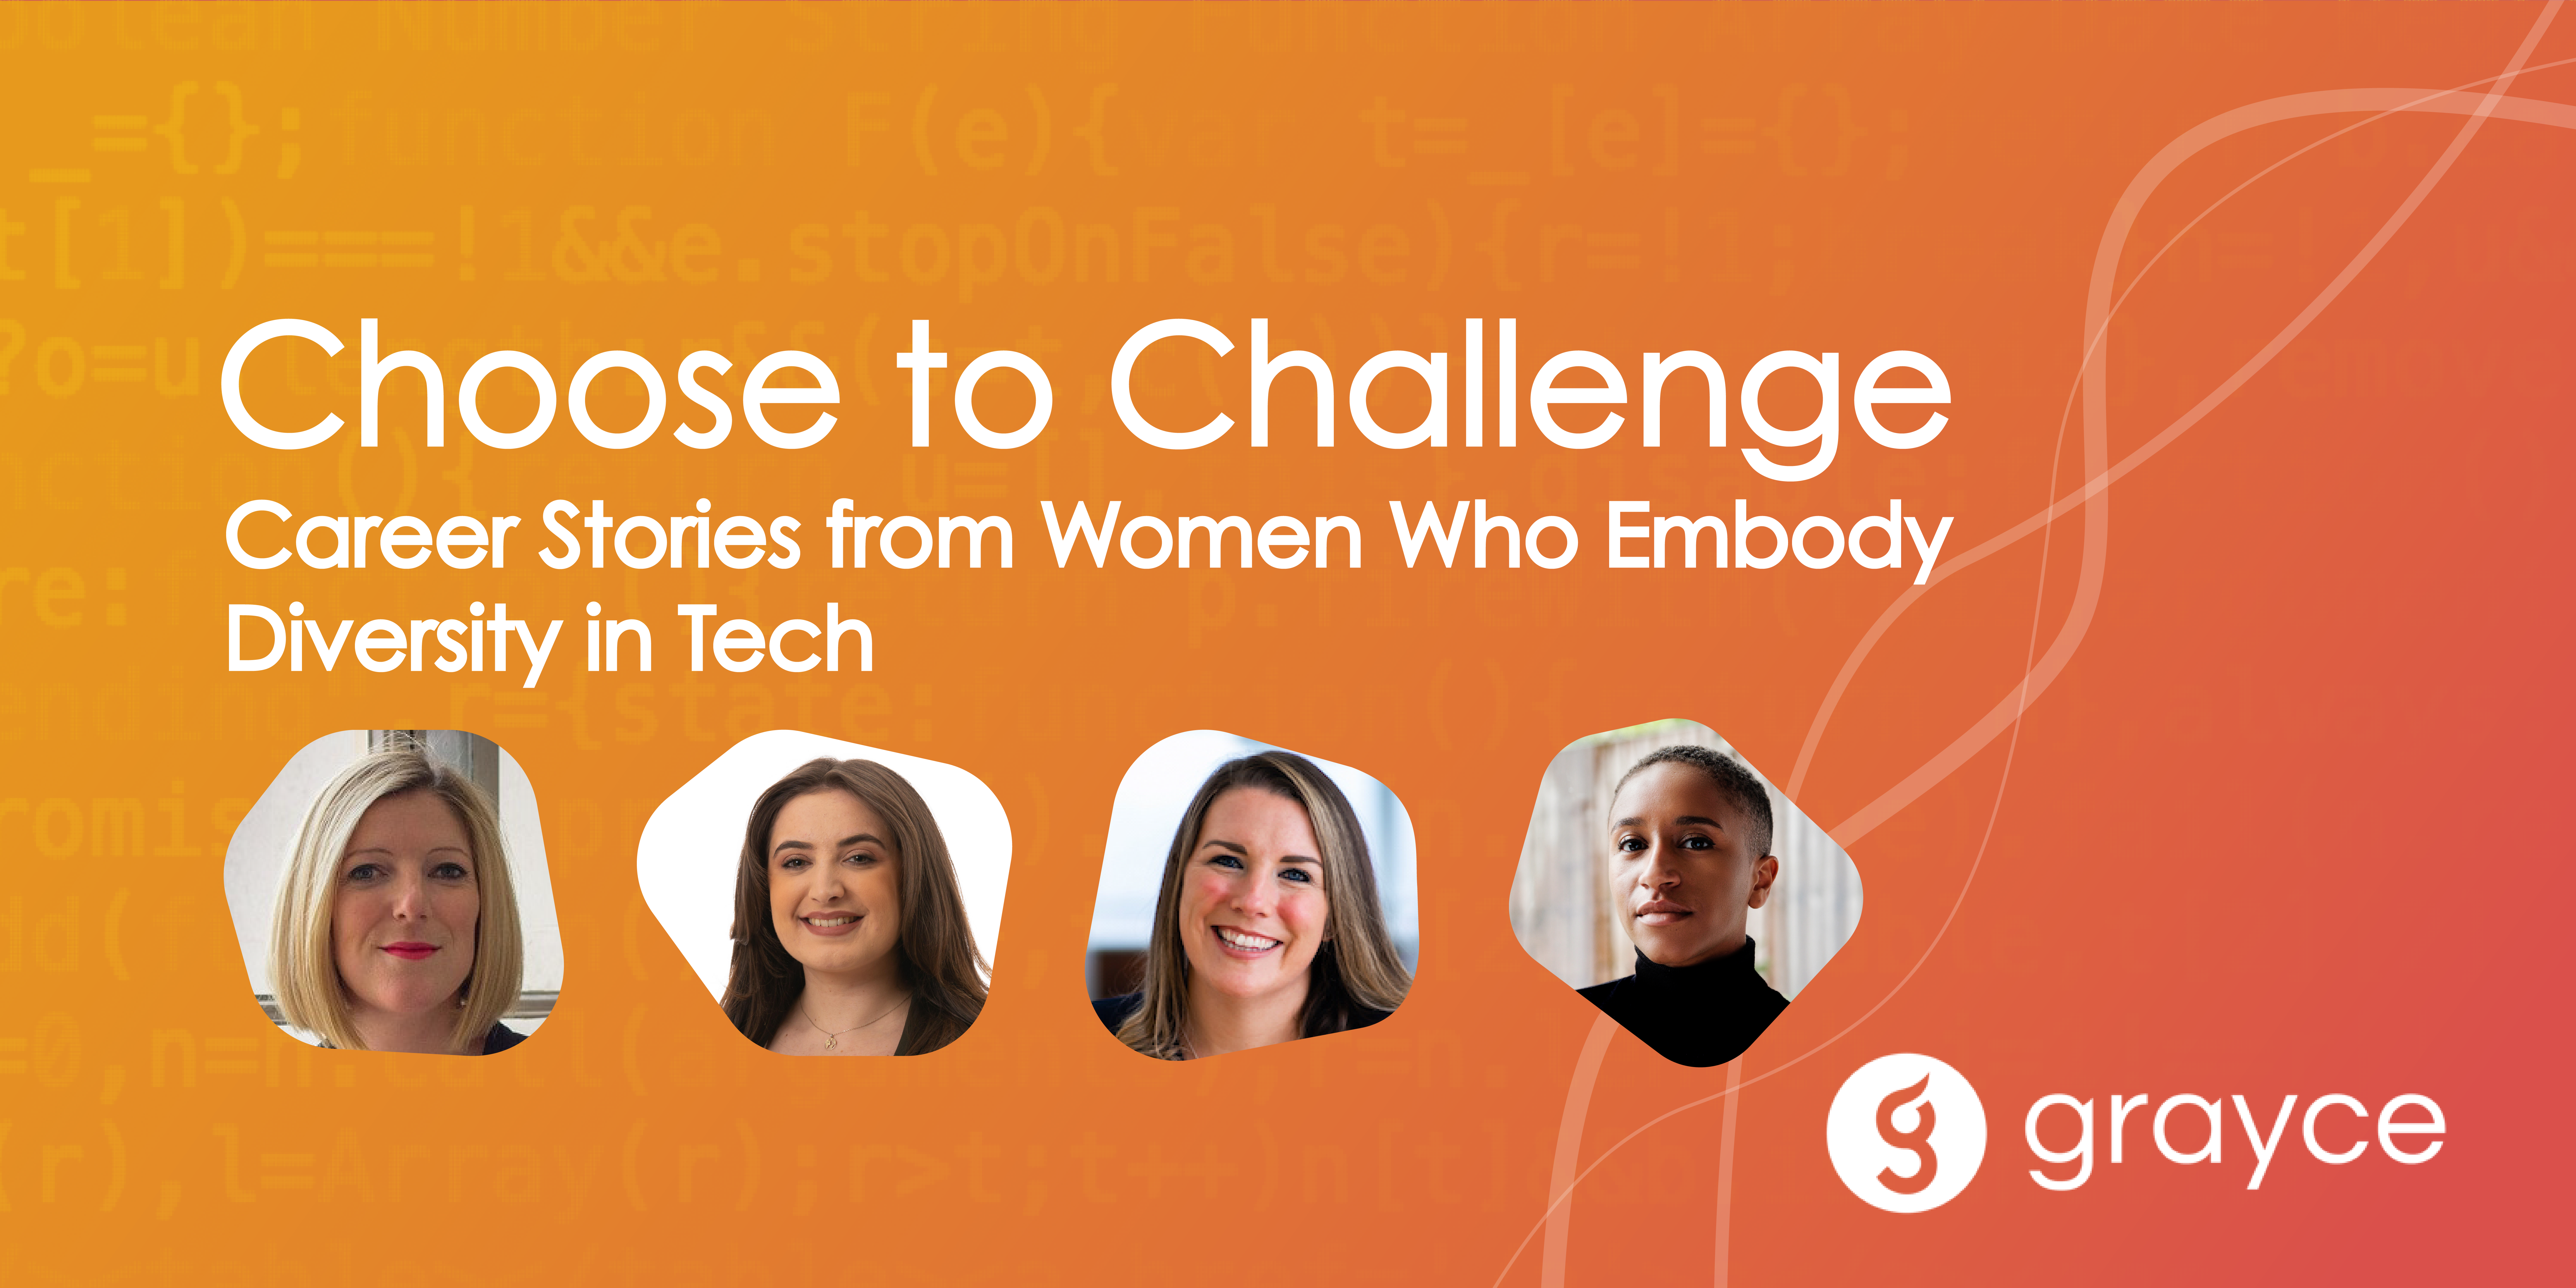 Choose to Challenge: Career Stories from Women Who Embody Diversity in Tech